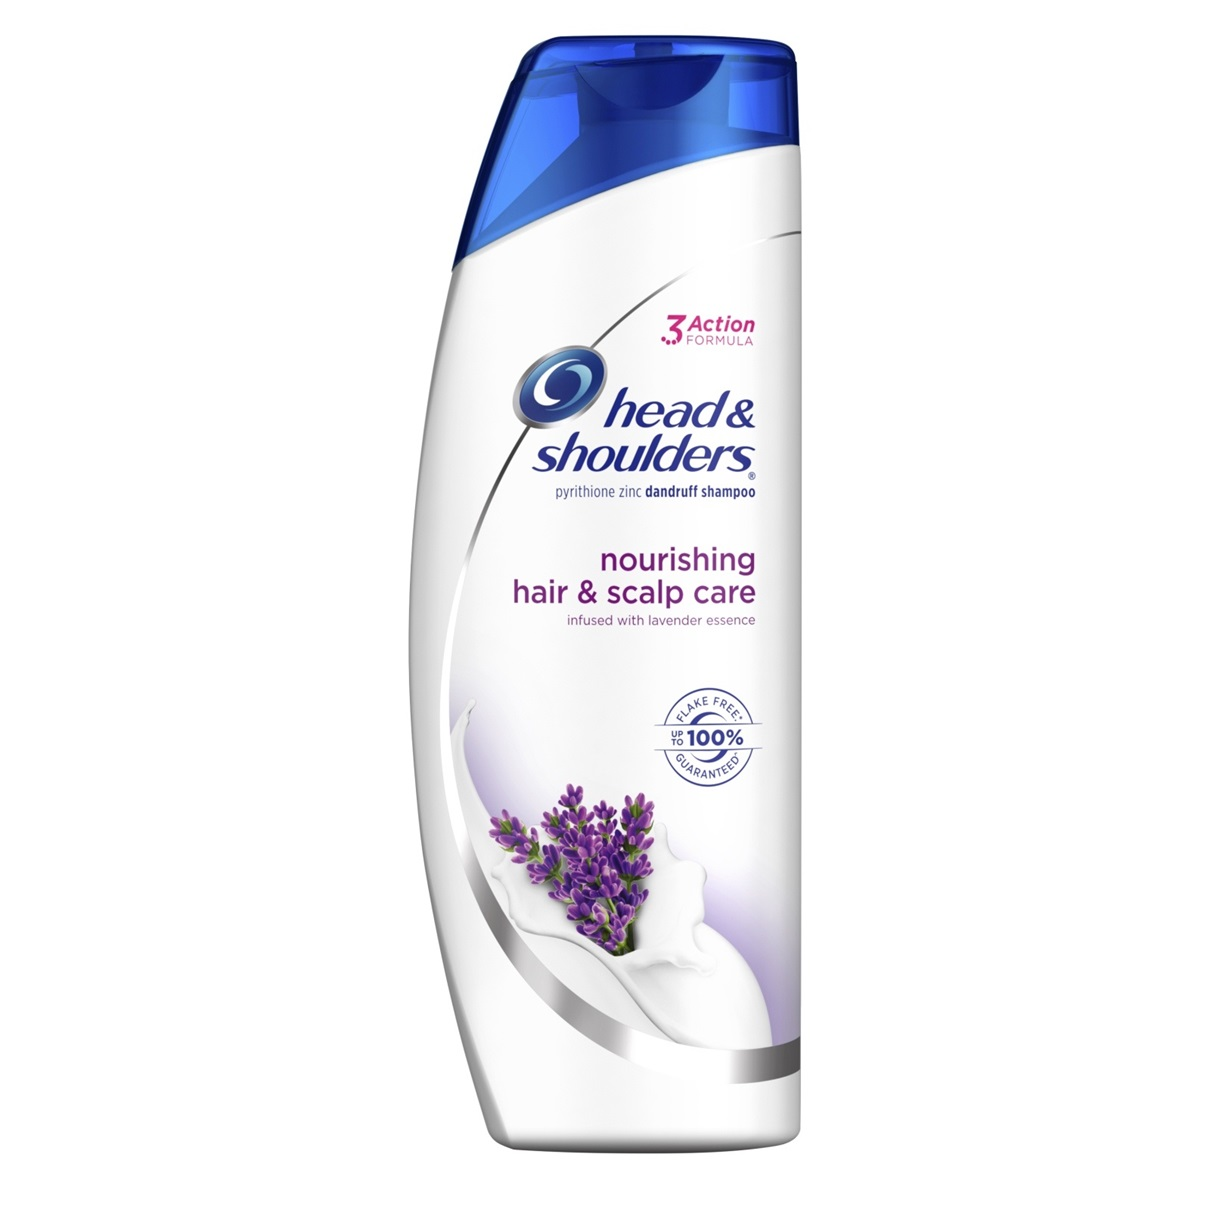 head & Shoulders nourishing care shampoo